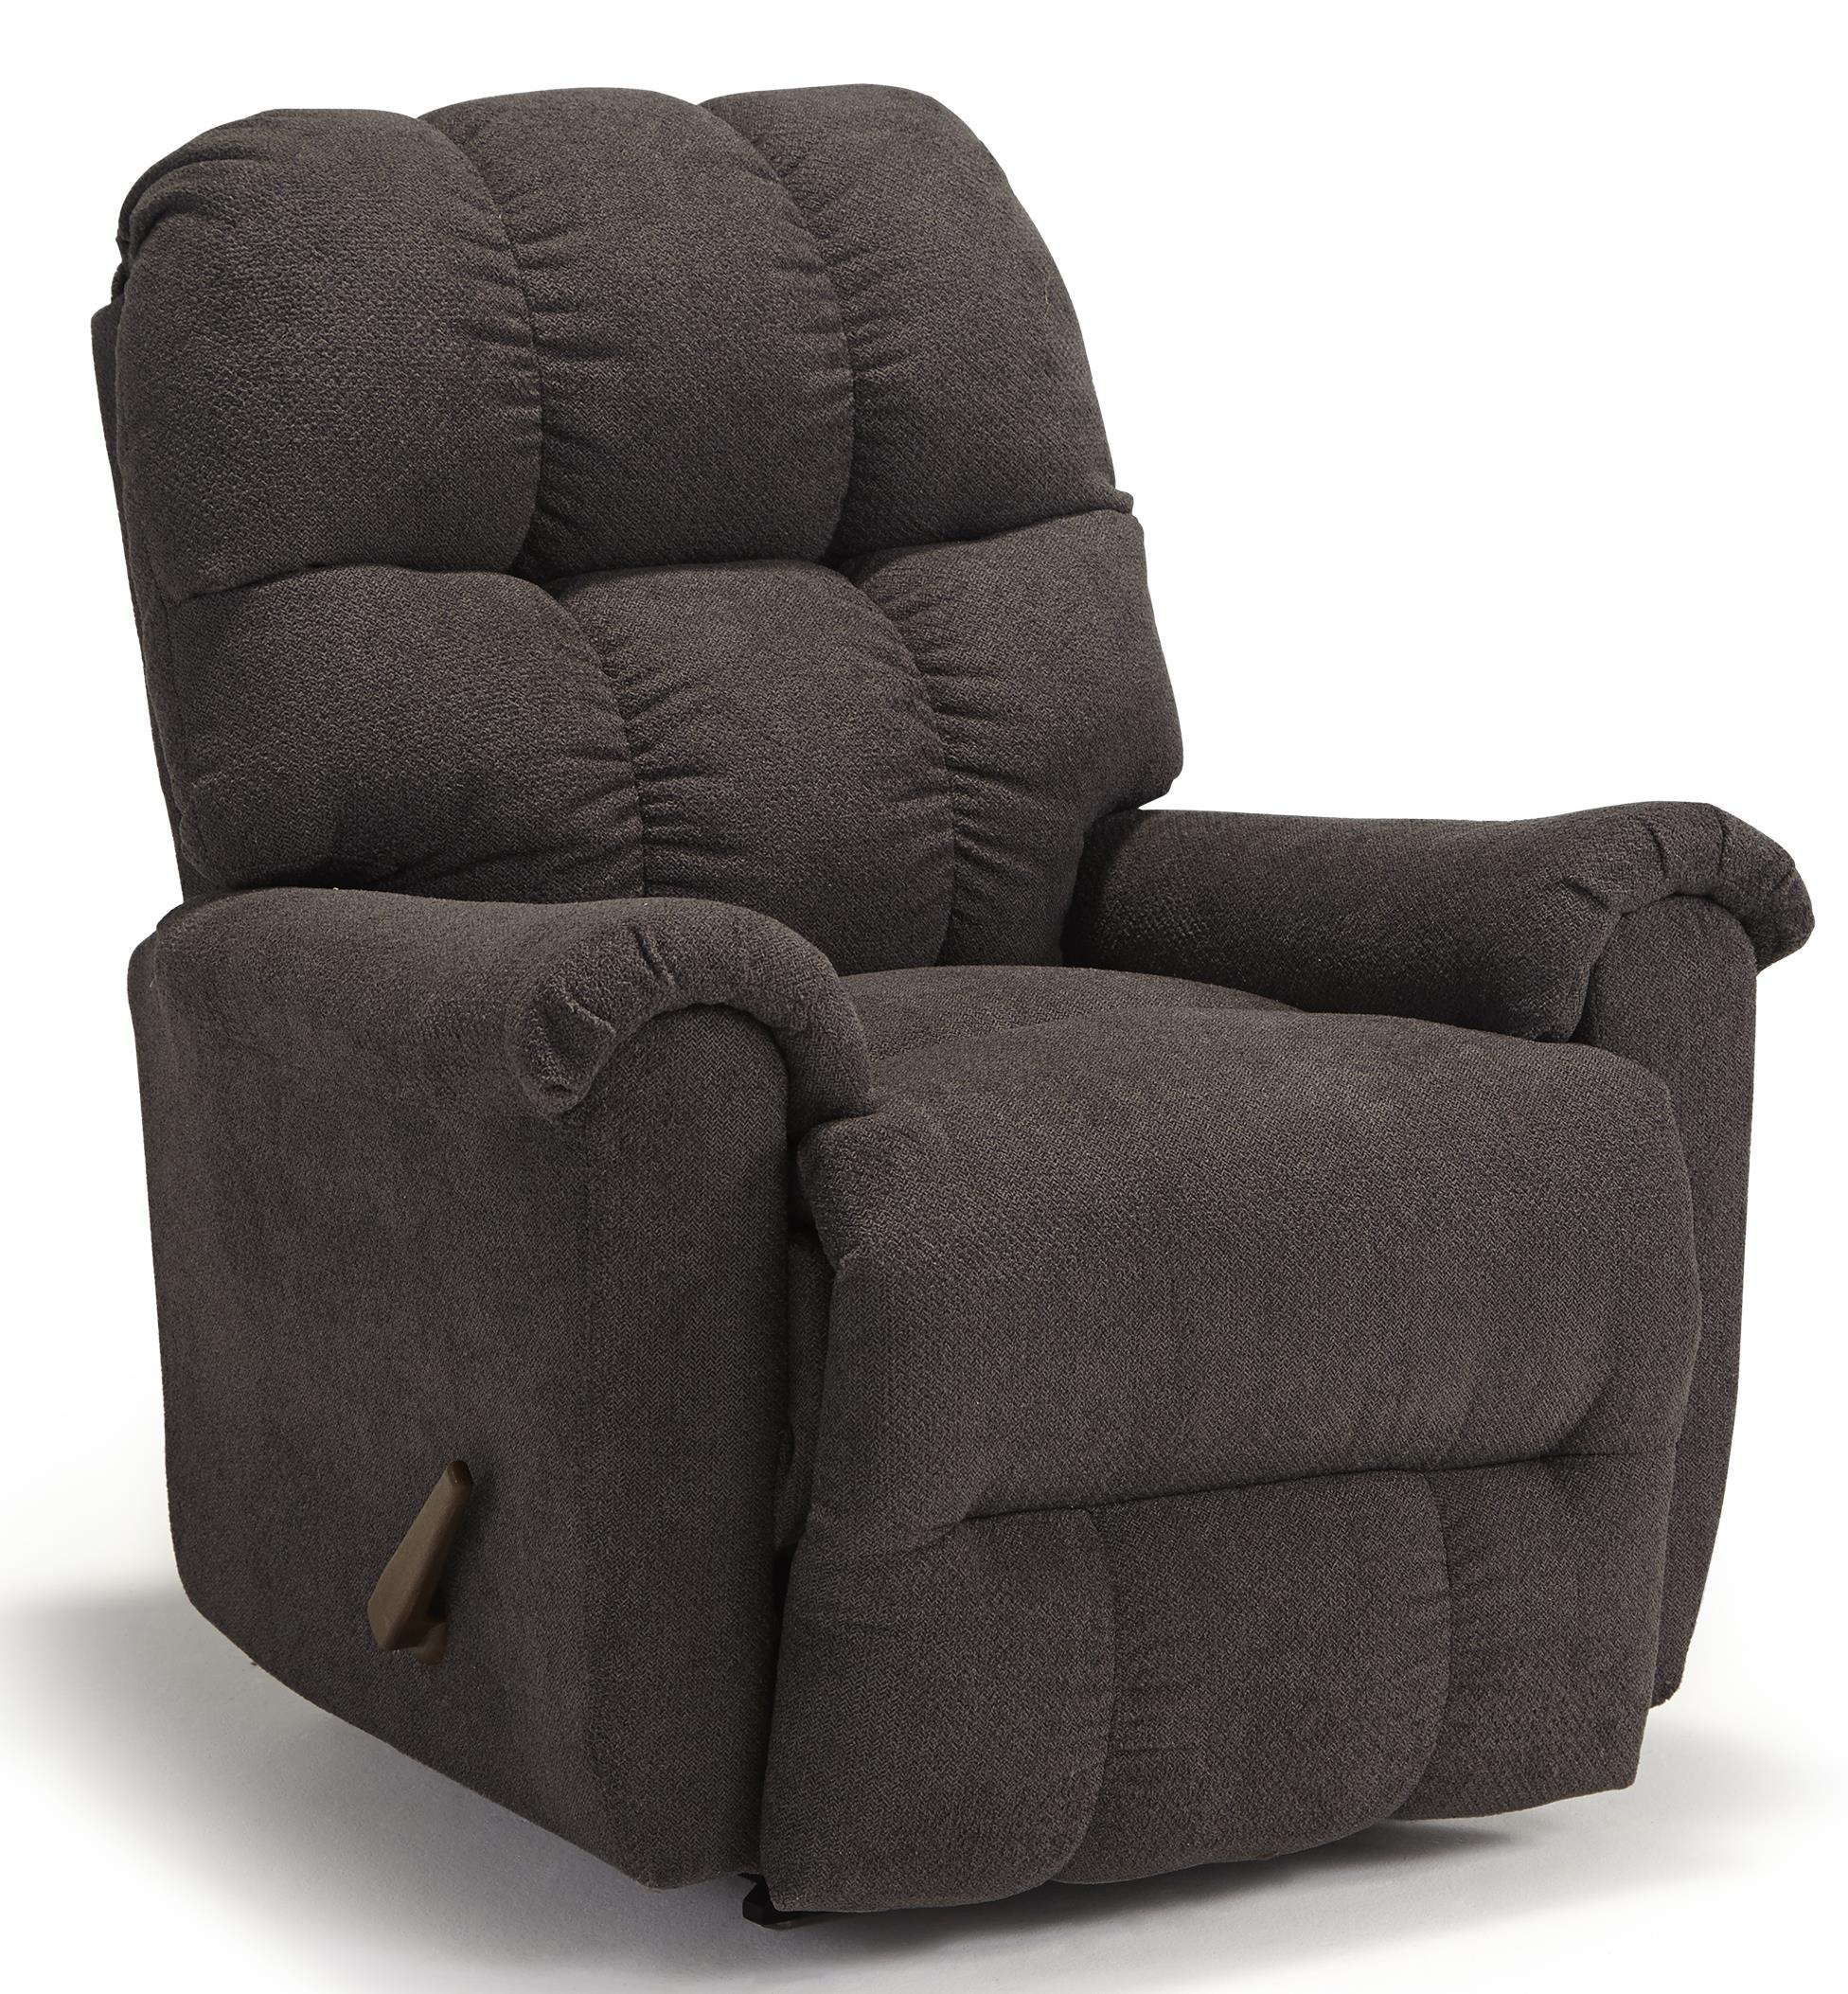 Best Home Furnishings Camryn BHF Swivel Glider Recliner - Item Number: 6N65-21153